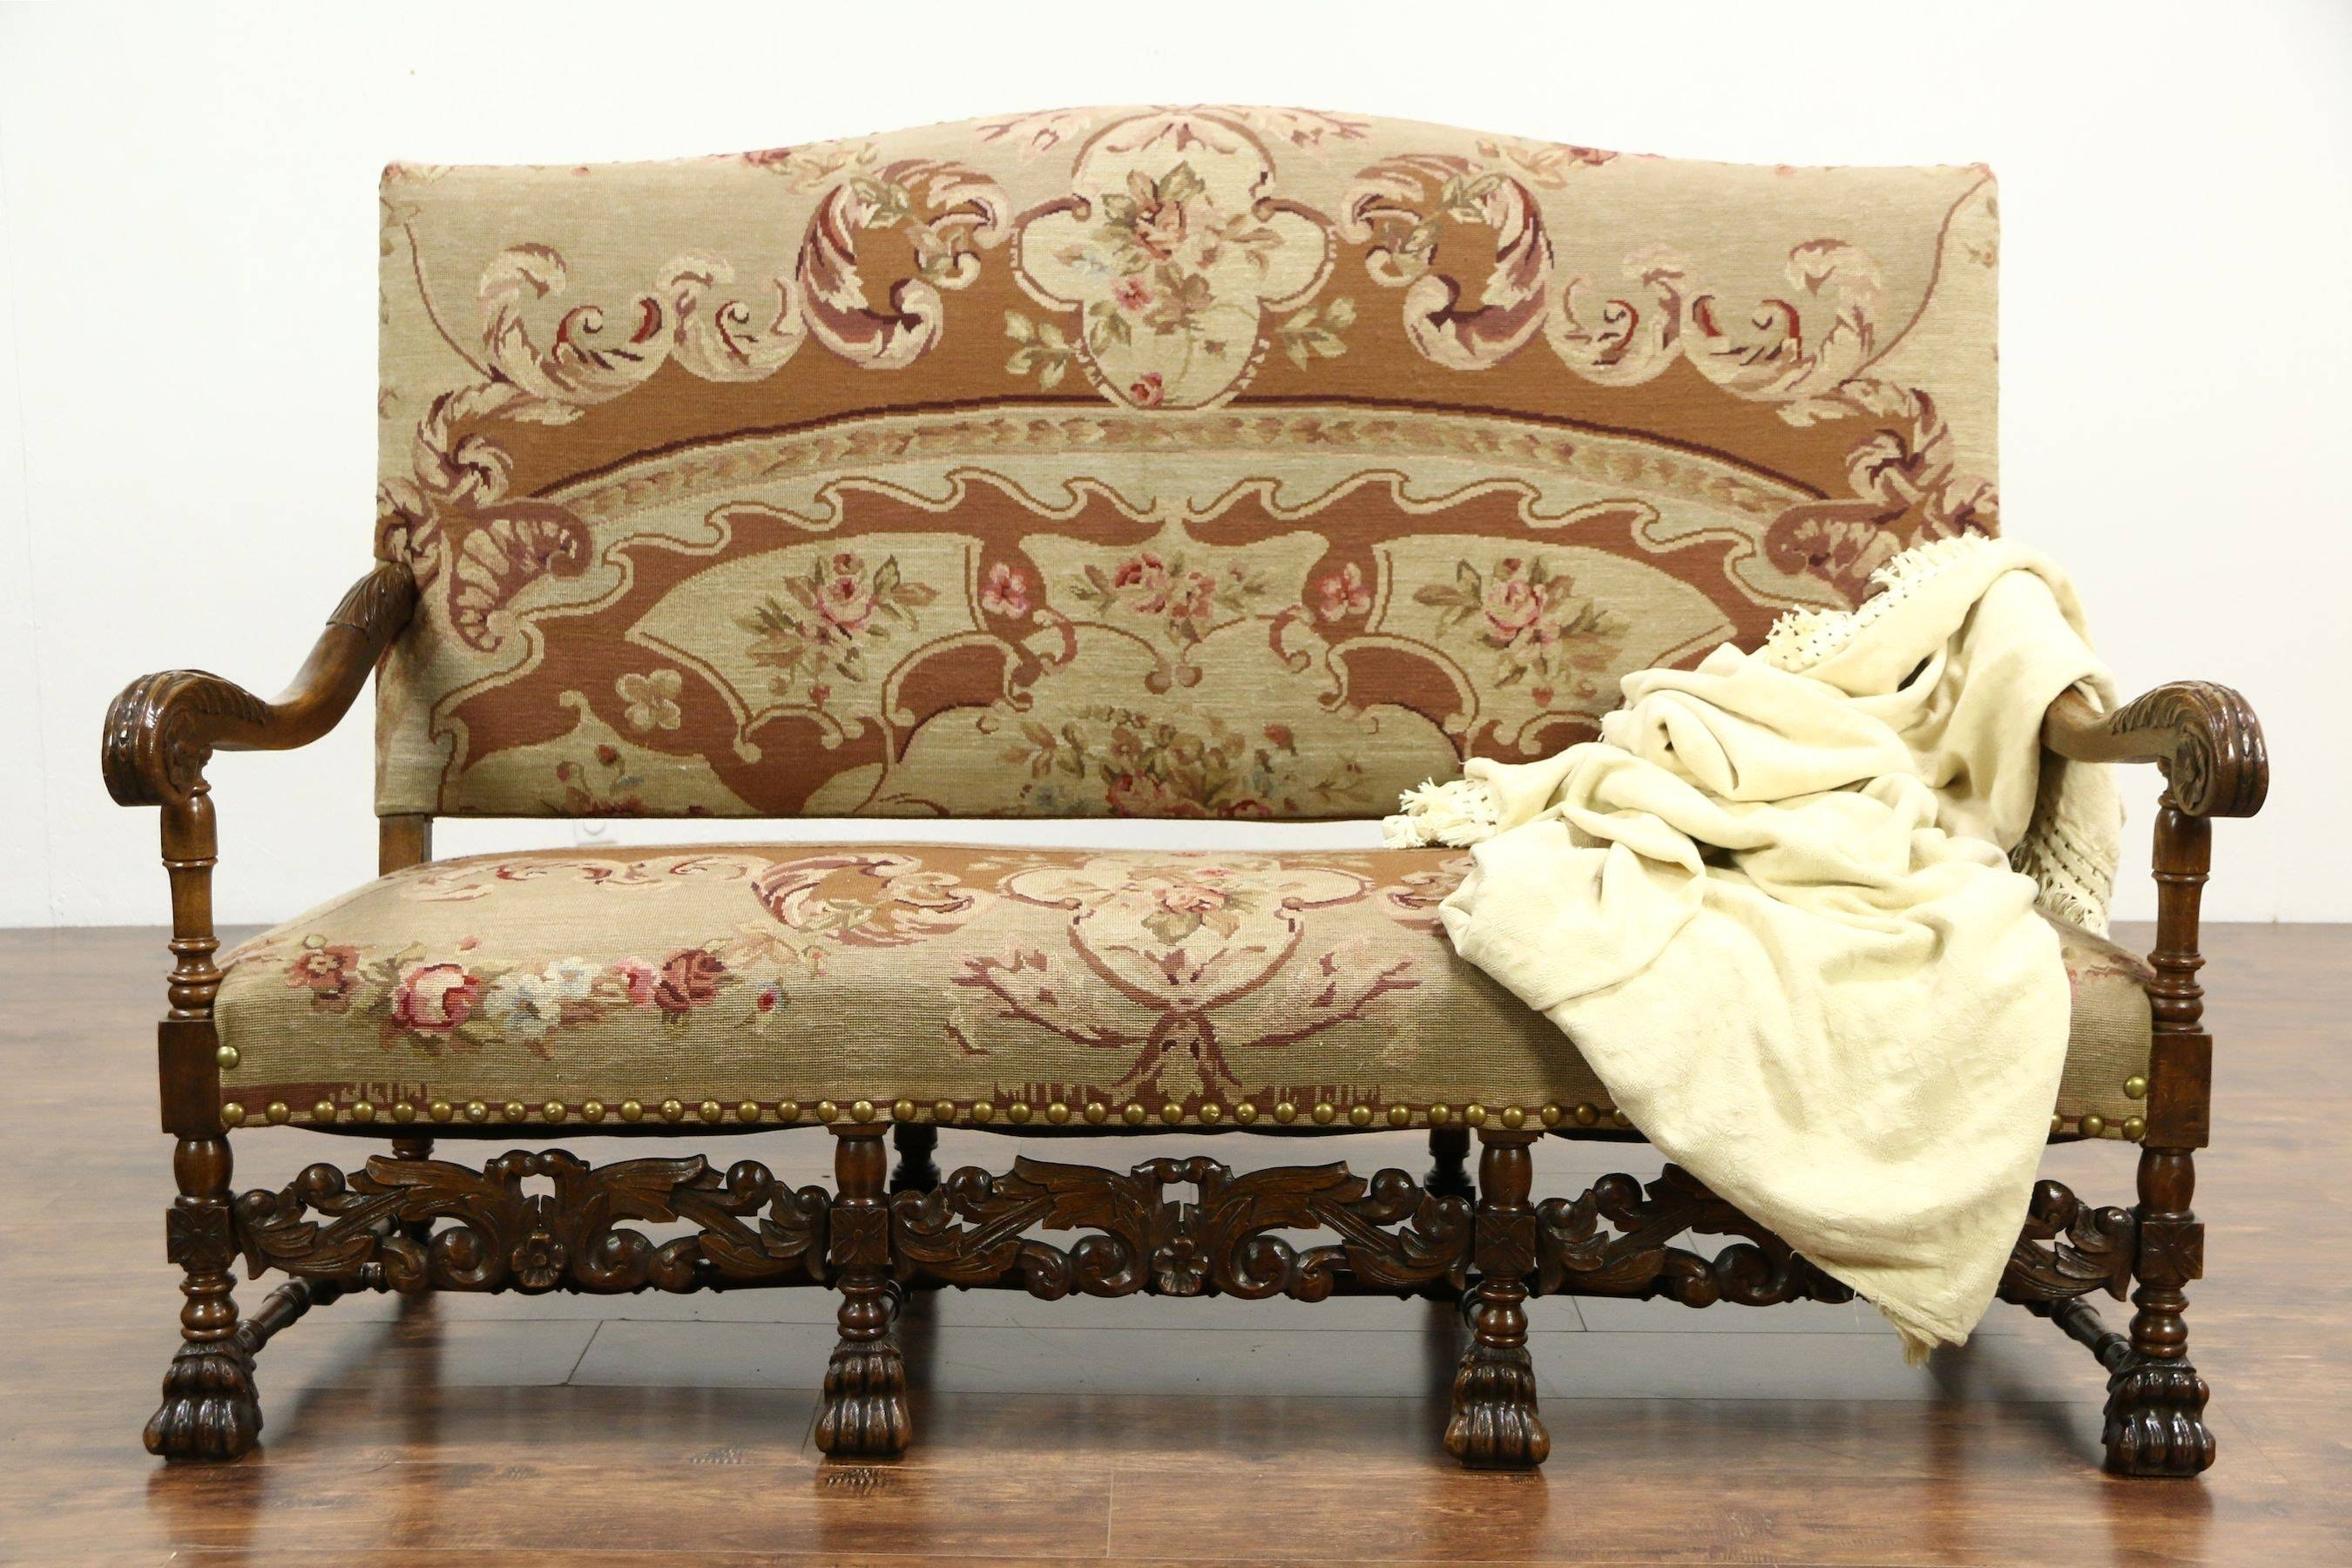 Vintage Settee Loveseat Bench Antique Tufted Image On Mesmerizing for Bench Cushion Sofas (Image 15 of 15)